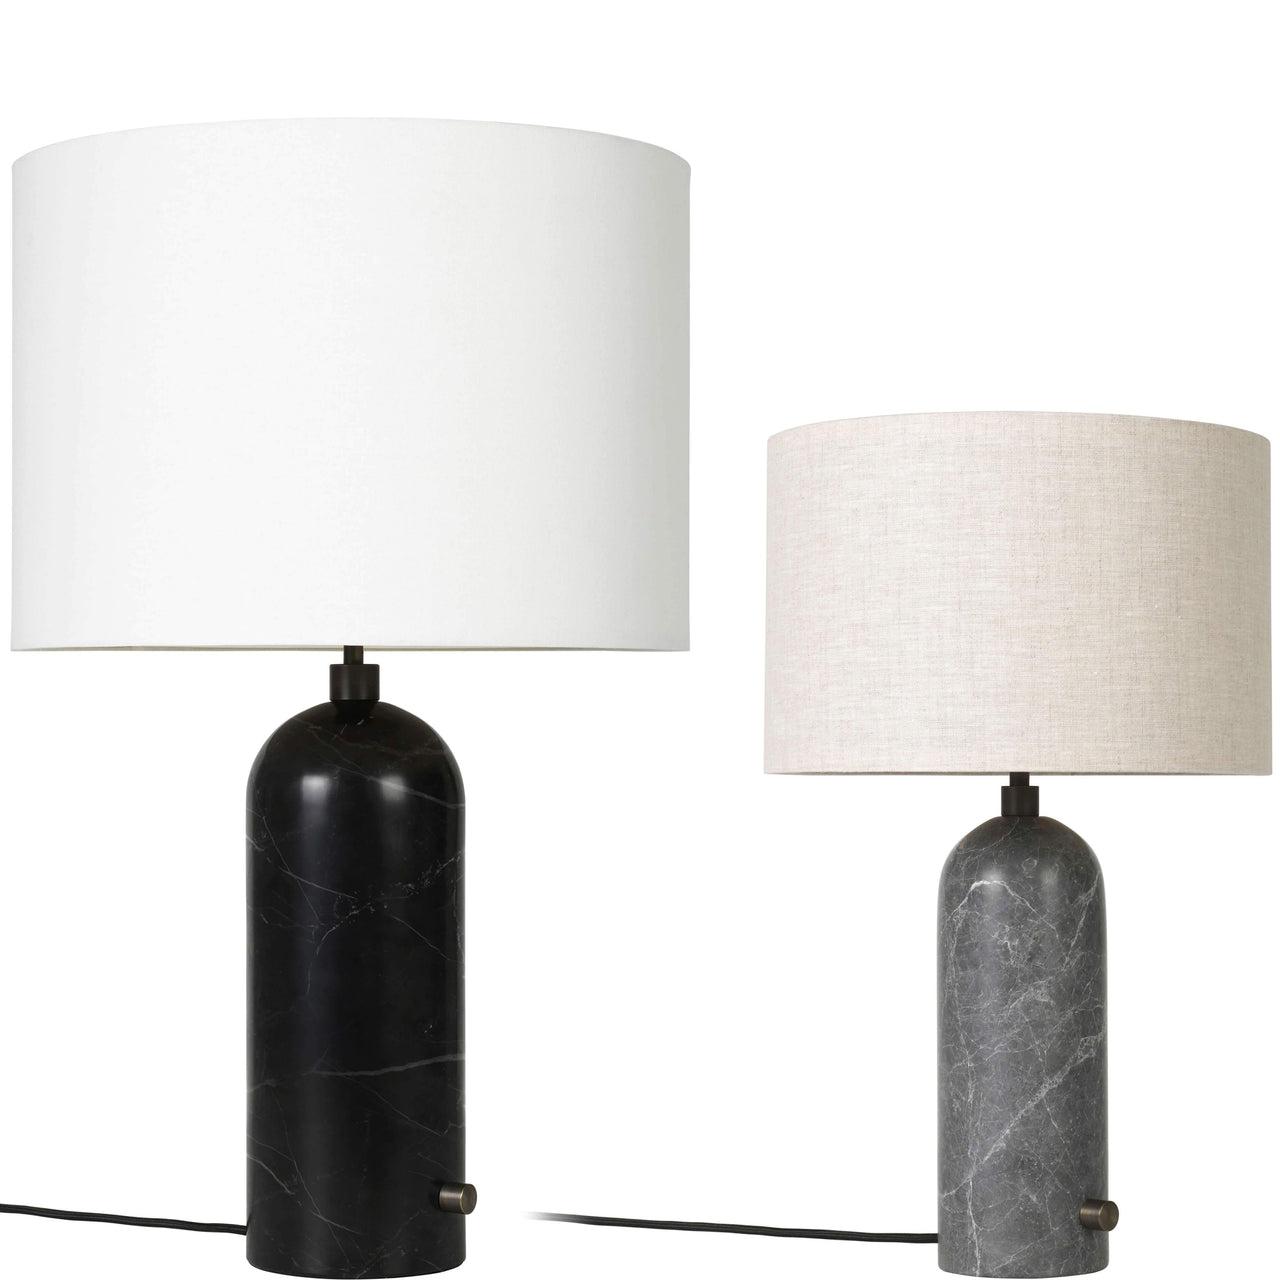 Gravity Table Lamp: Large + Black Marble + White + Small + Grey Marble + Canvas